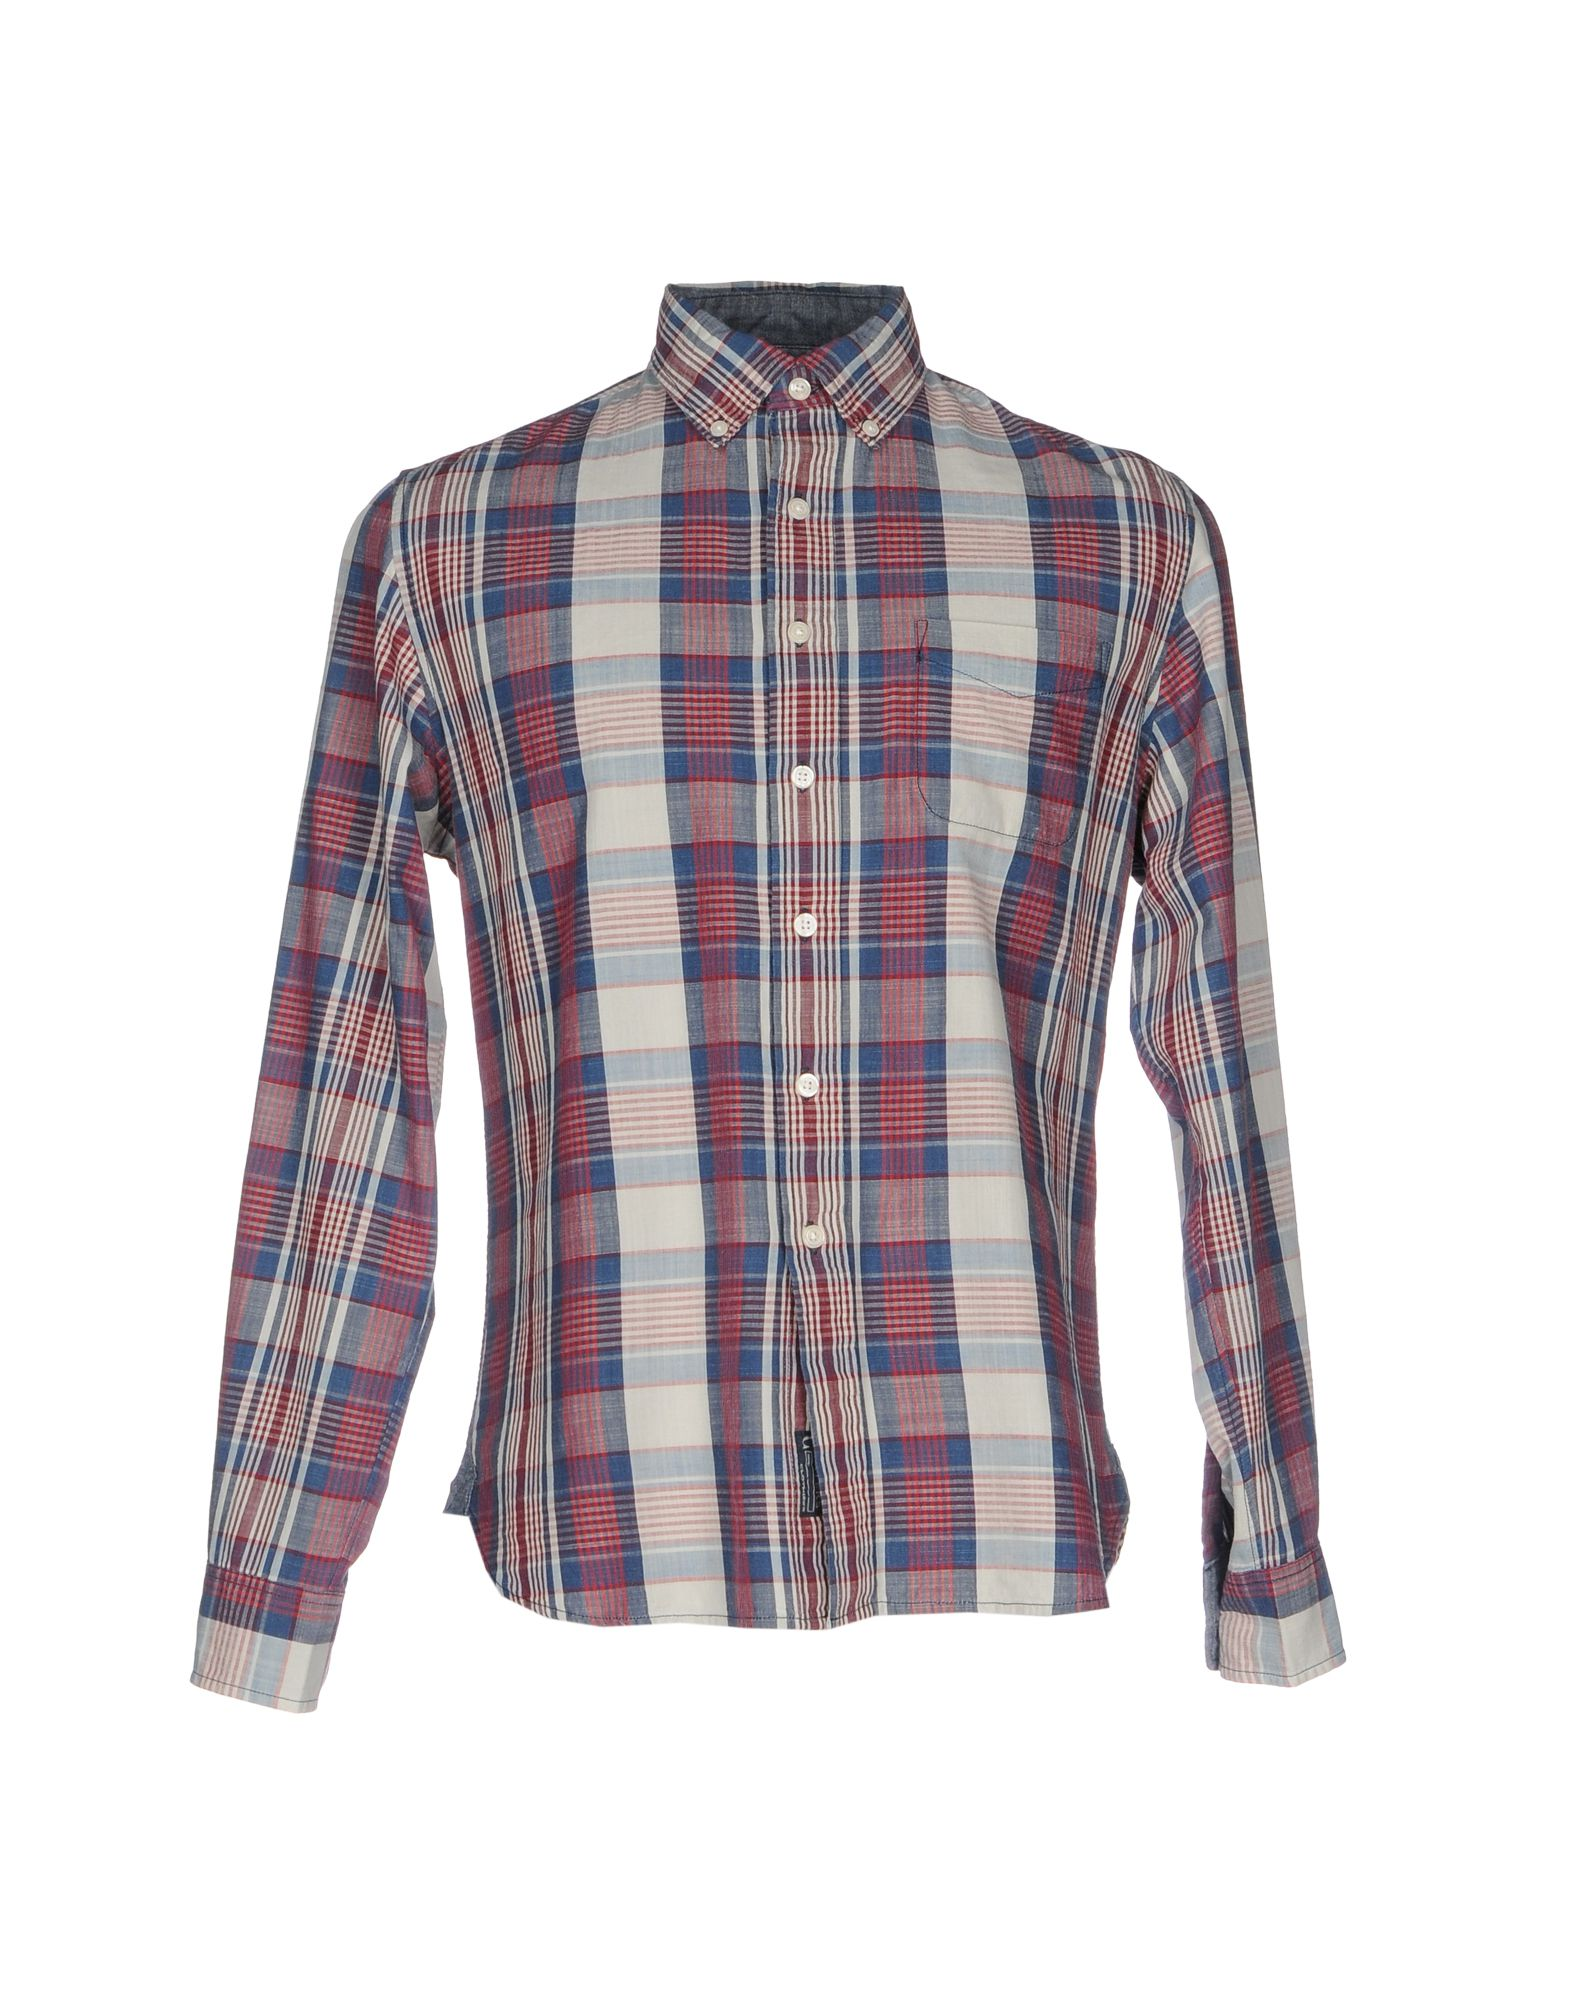 GRAYERS Checked Shirt in Blue